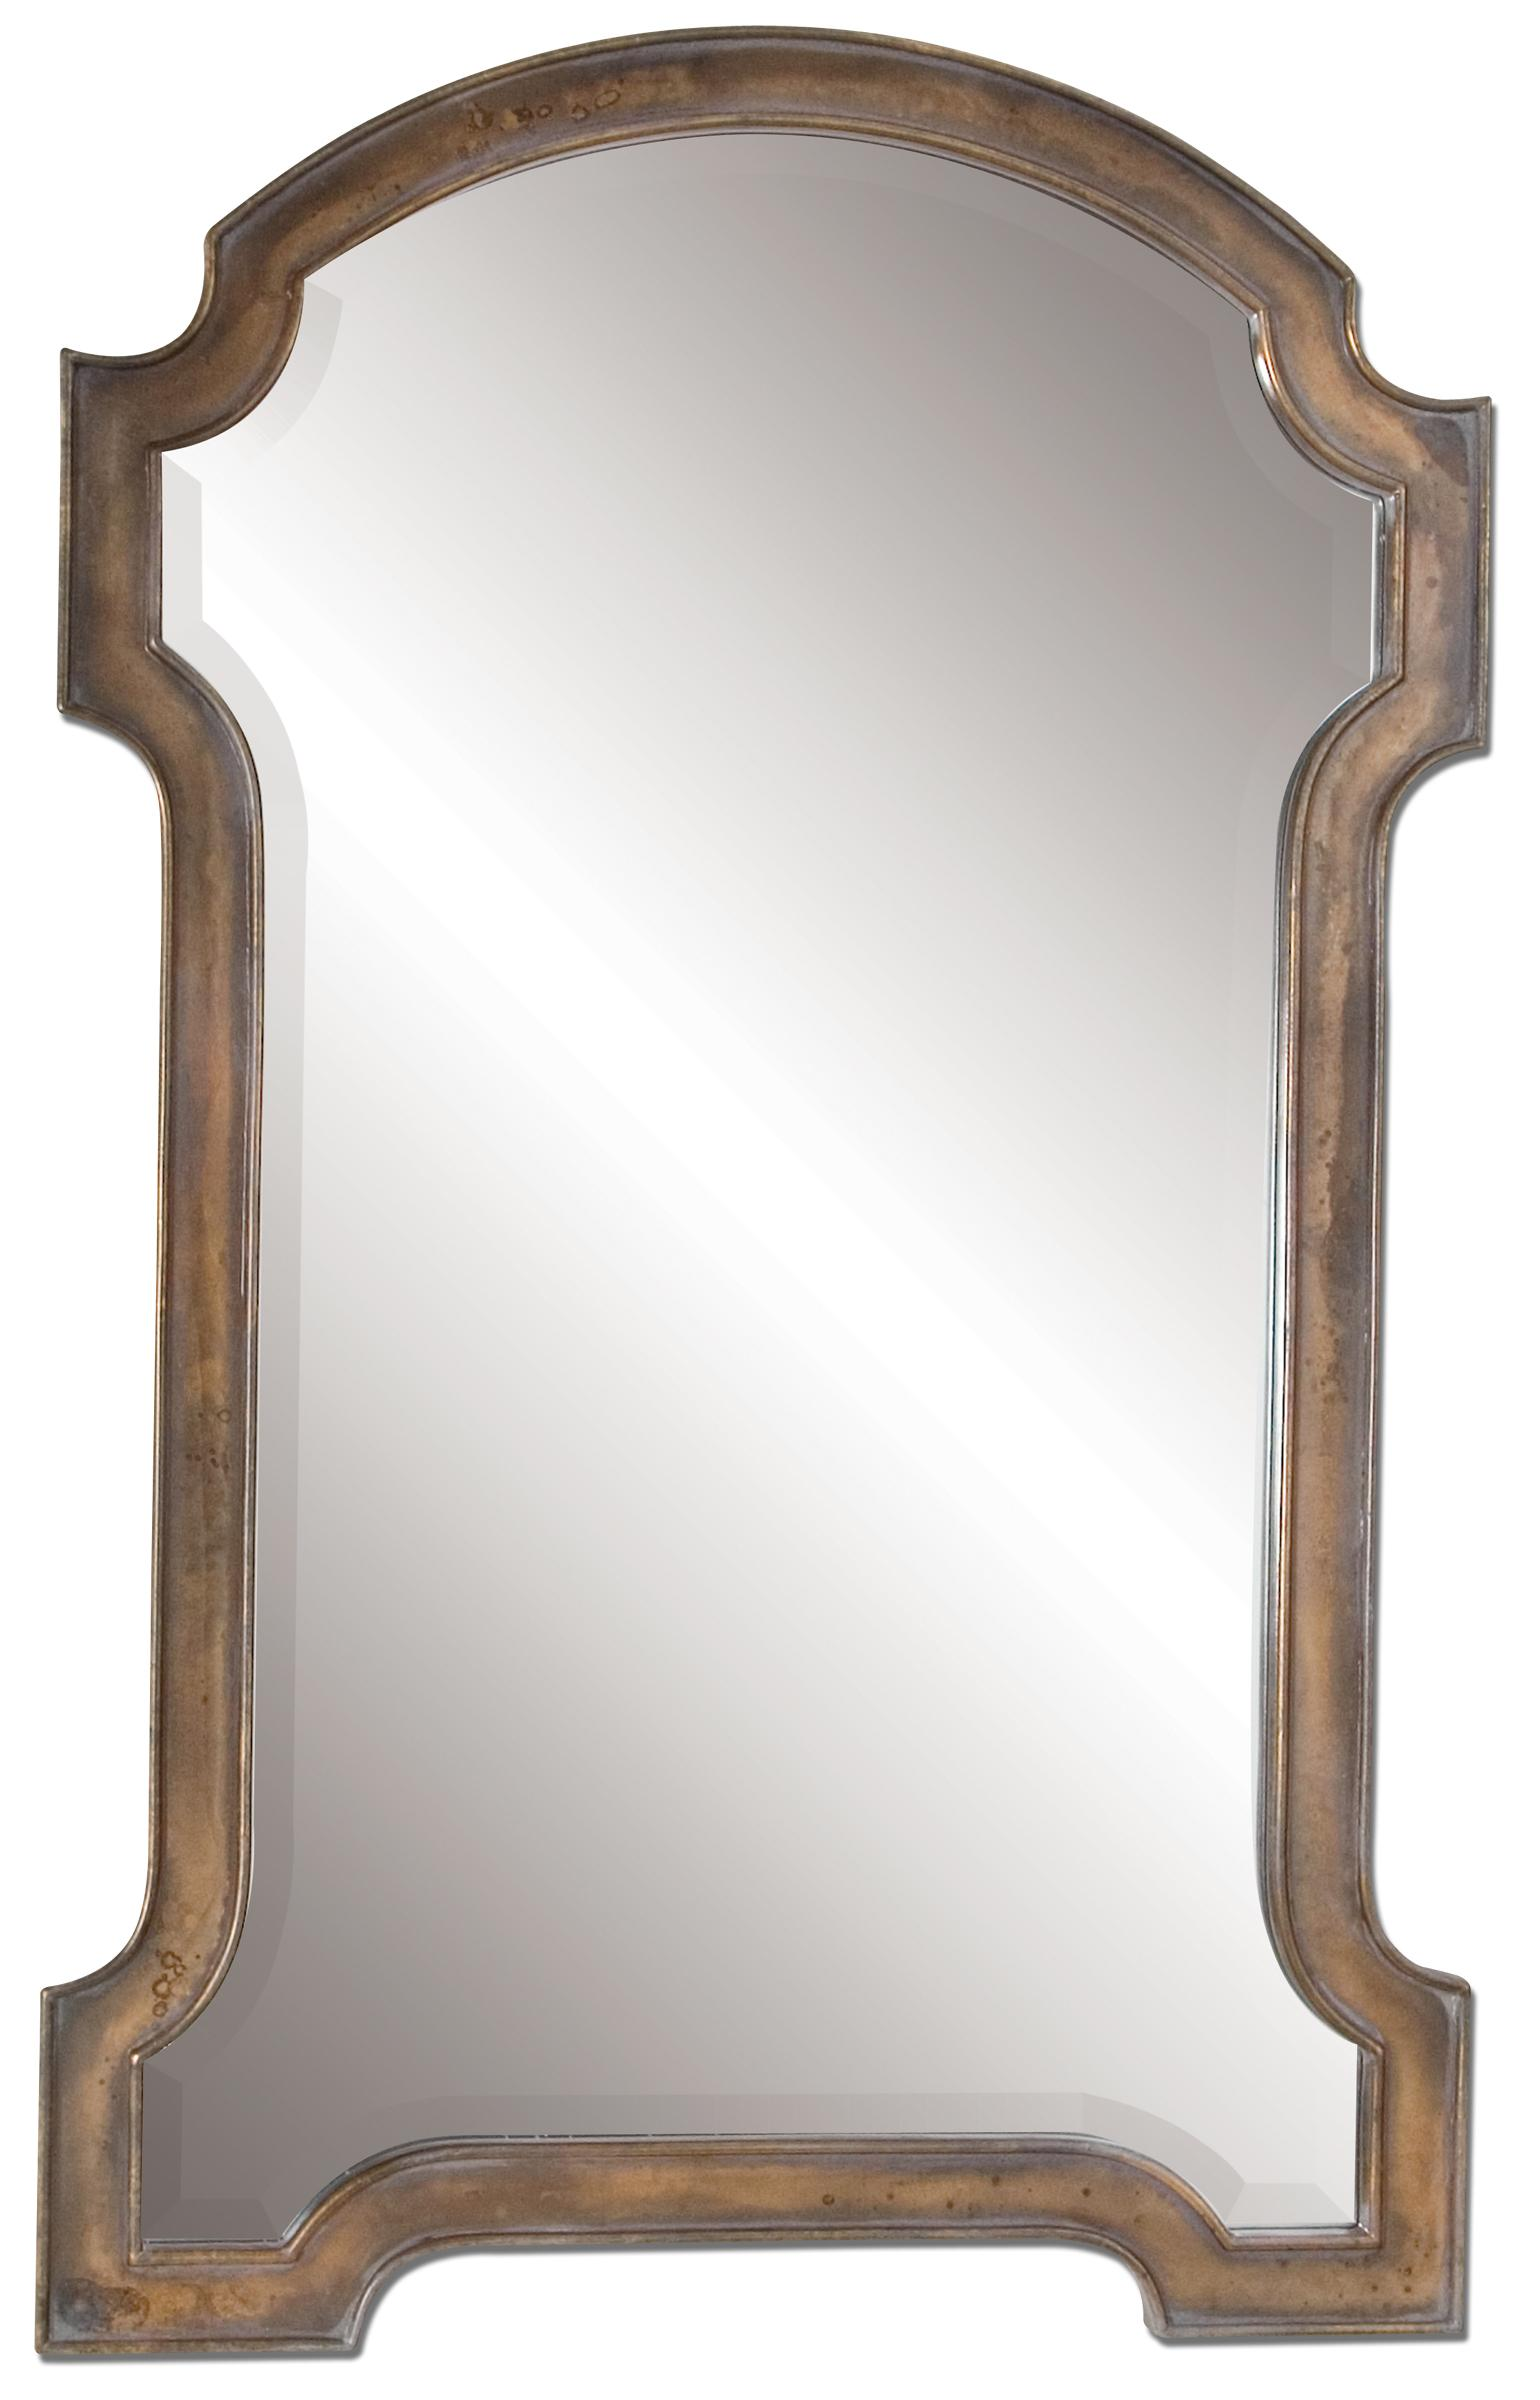 Uttermost Mirrors Corciano - Item Number: 12840